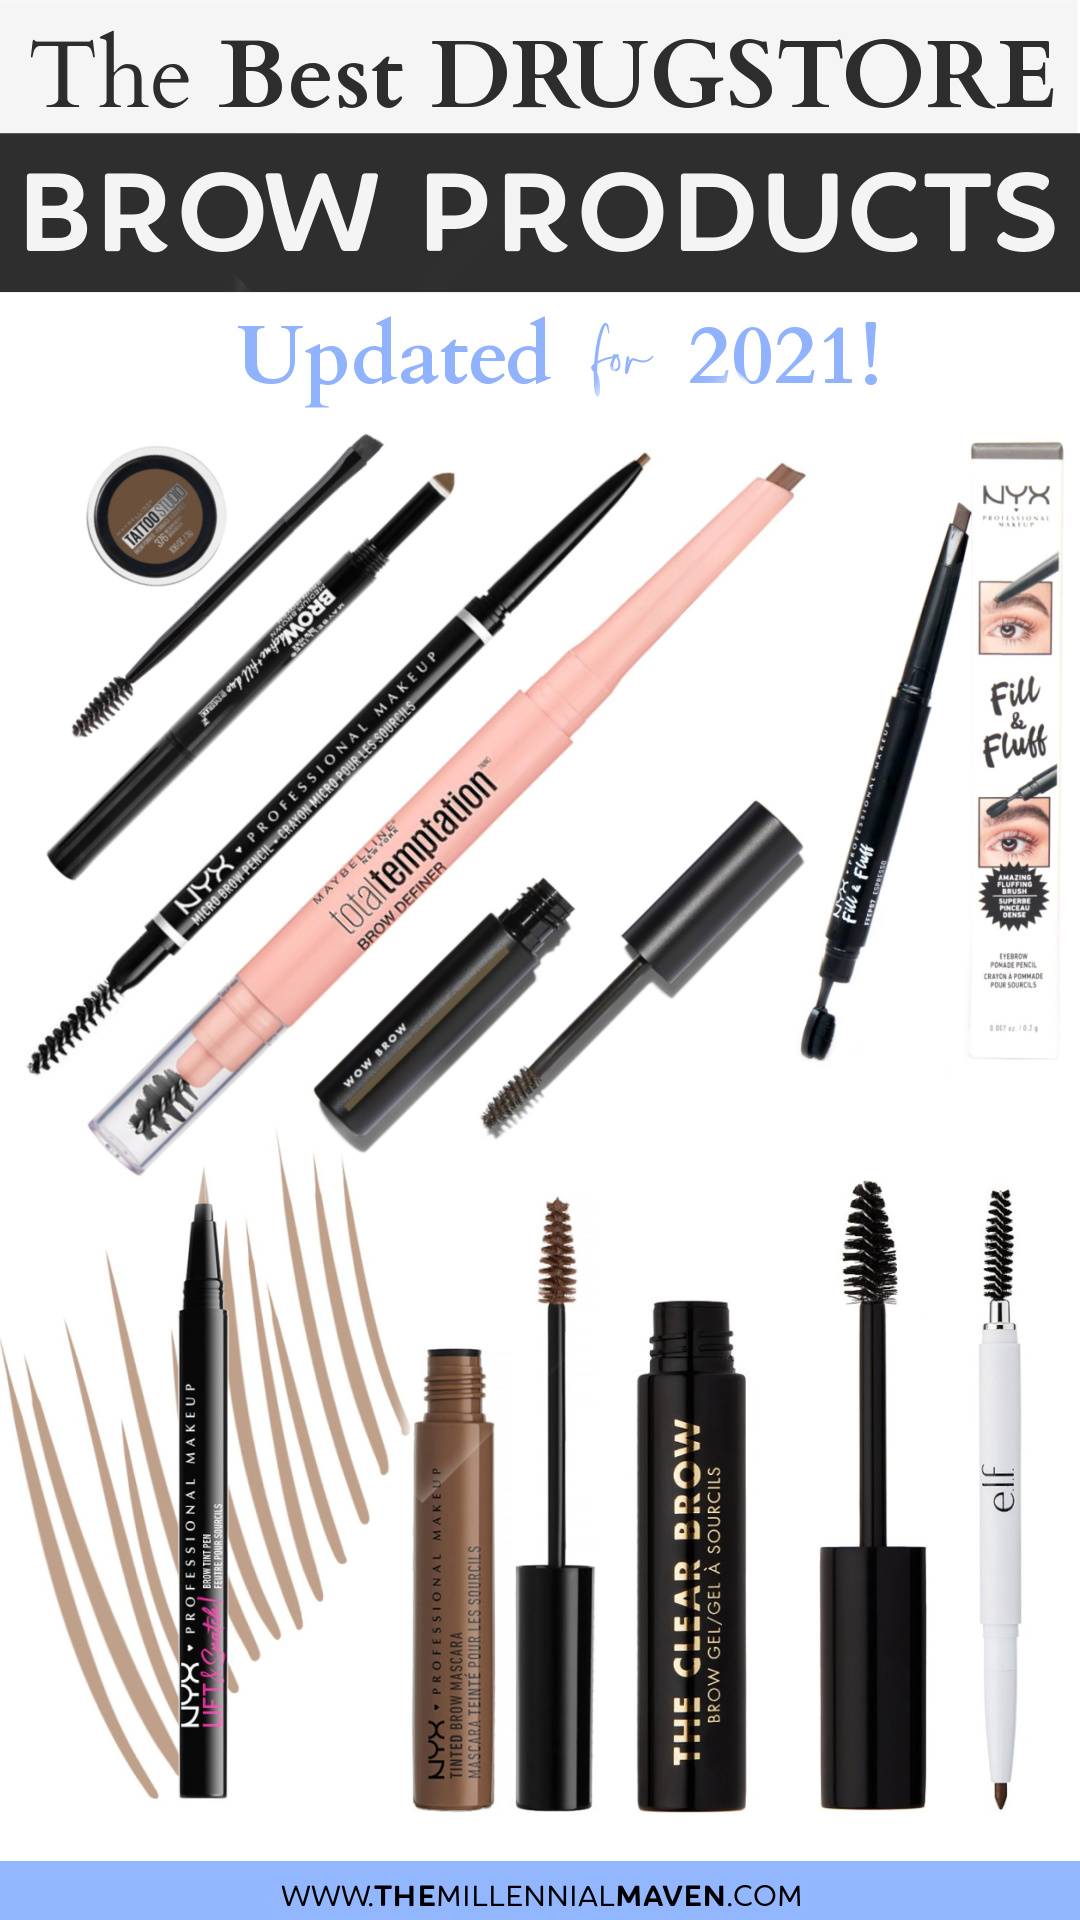 Top 10 Best Drugstore Eyebrow Products in 2021! | Best Drugstore Brow Products